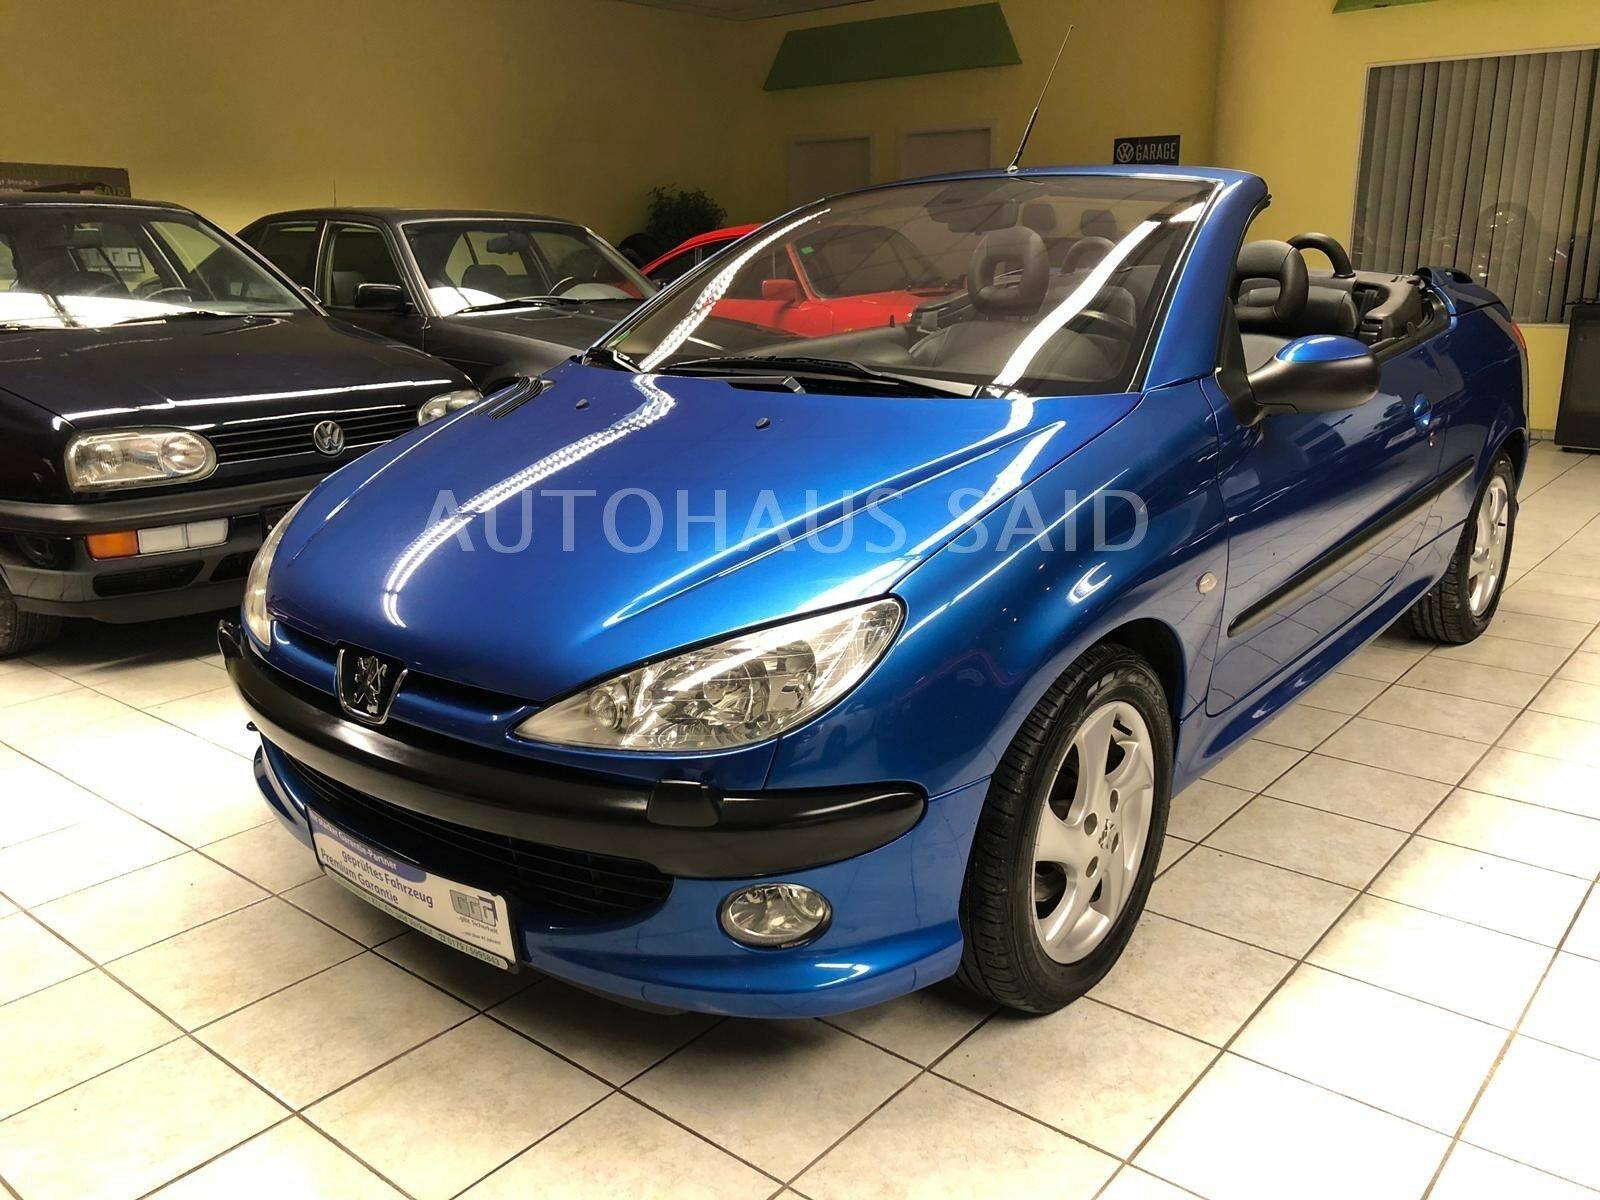 peugeot 206 cabriolet cc platinum 63tkm deine autob rse. Black Bedroom Furniture Sets. Home Design Ideas